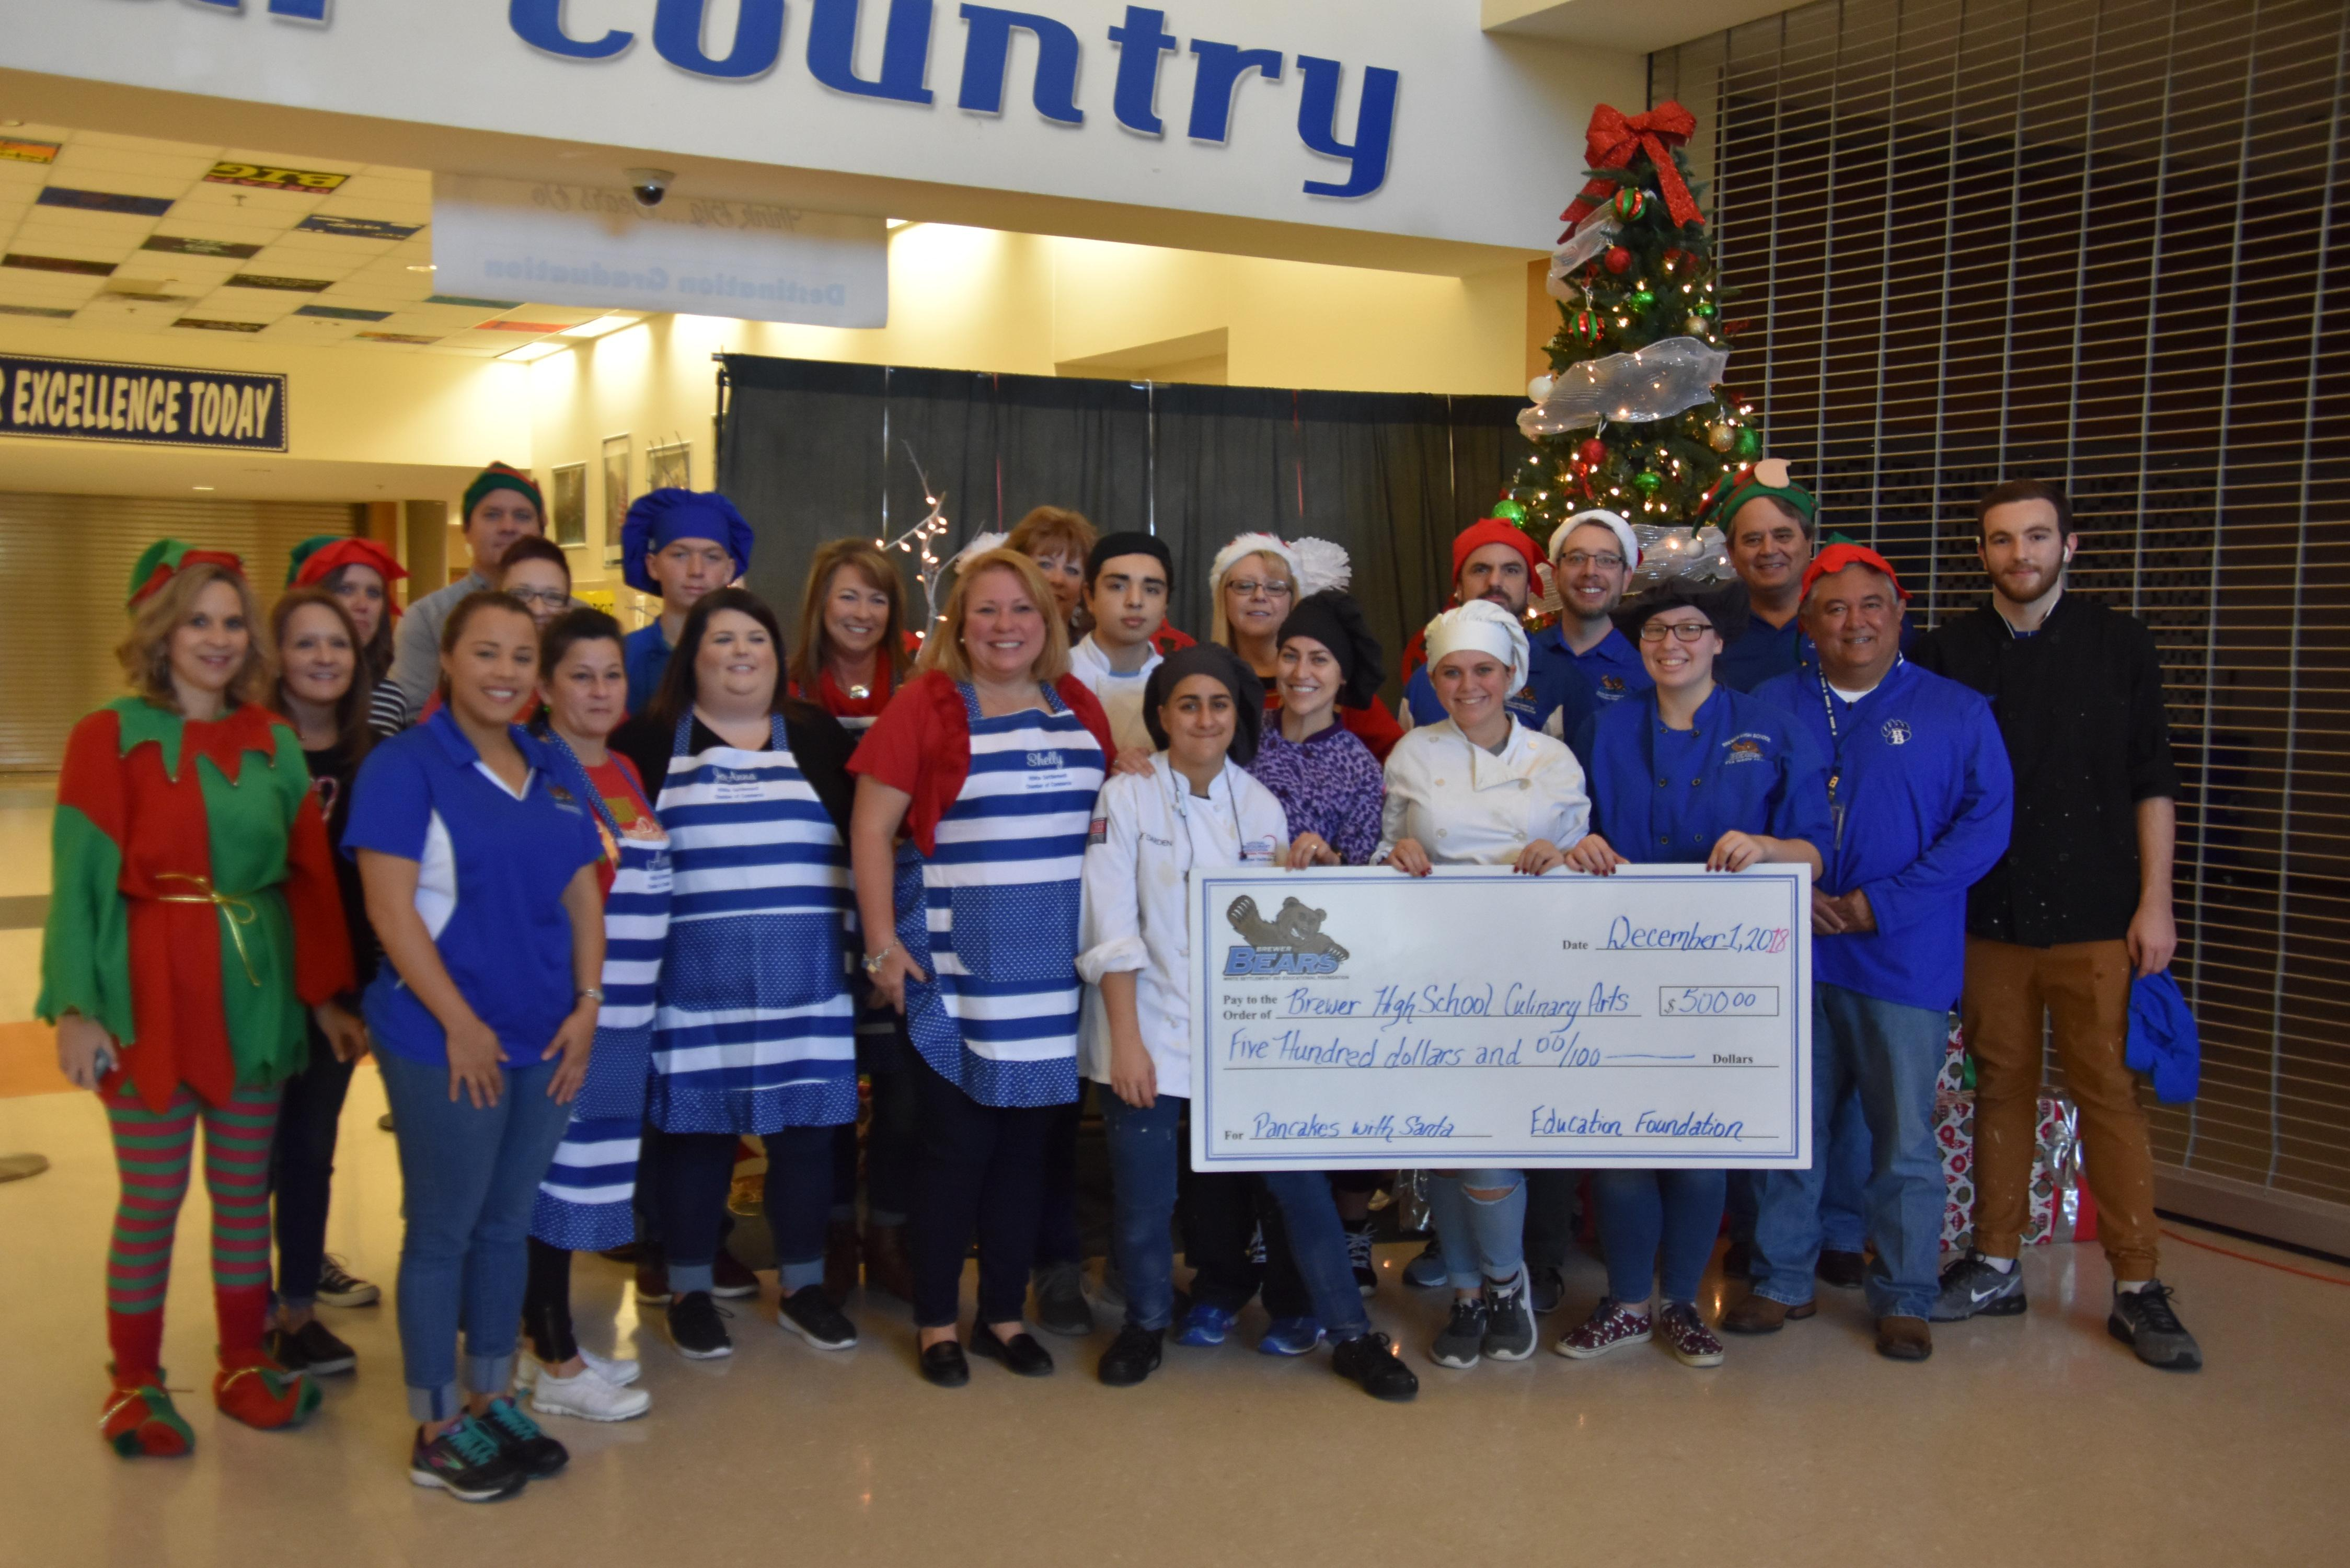 The WSISD Education Foundation and the White Settlement Chamber of Commerce sponsored our 3rd annual Pancakes with Santa event on Dec. 1. They awarded $500 to the Brewer Culinary Arts program for preparing the meal.